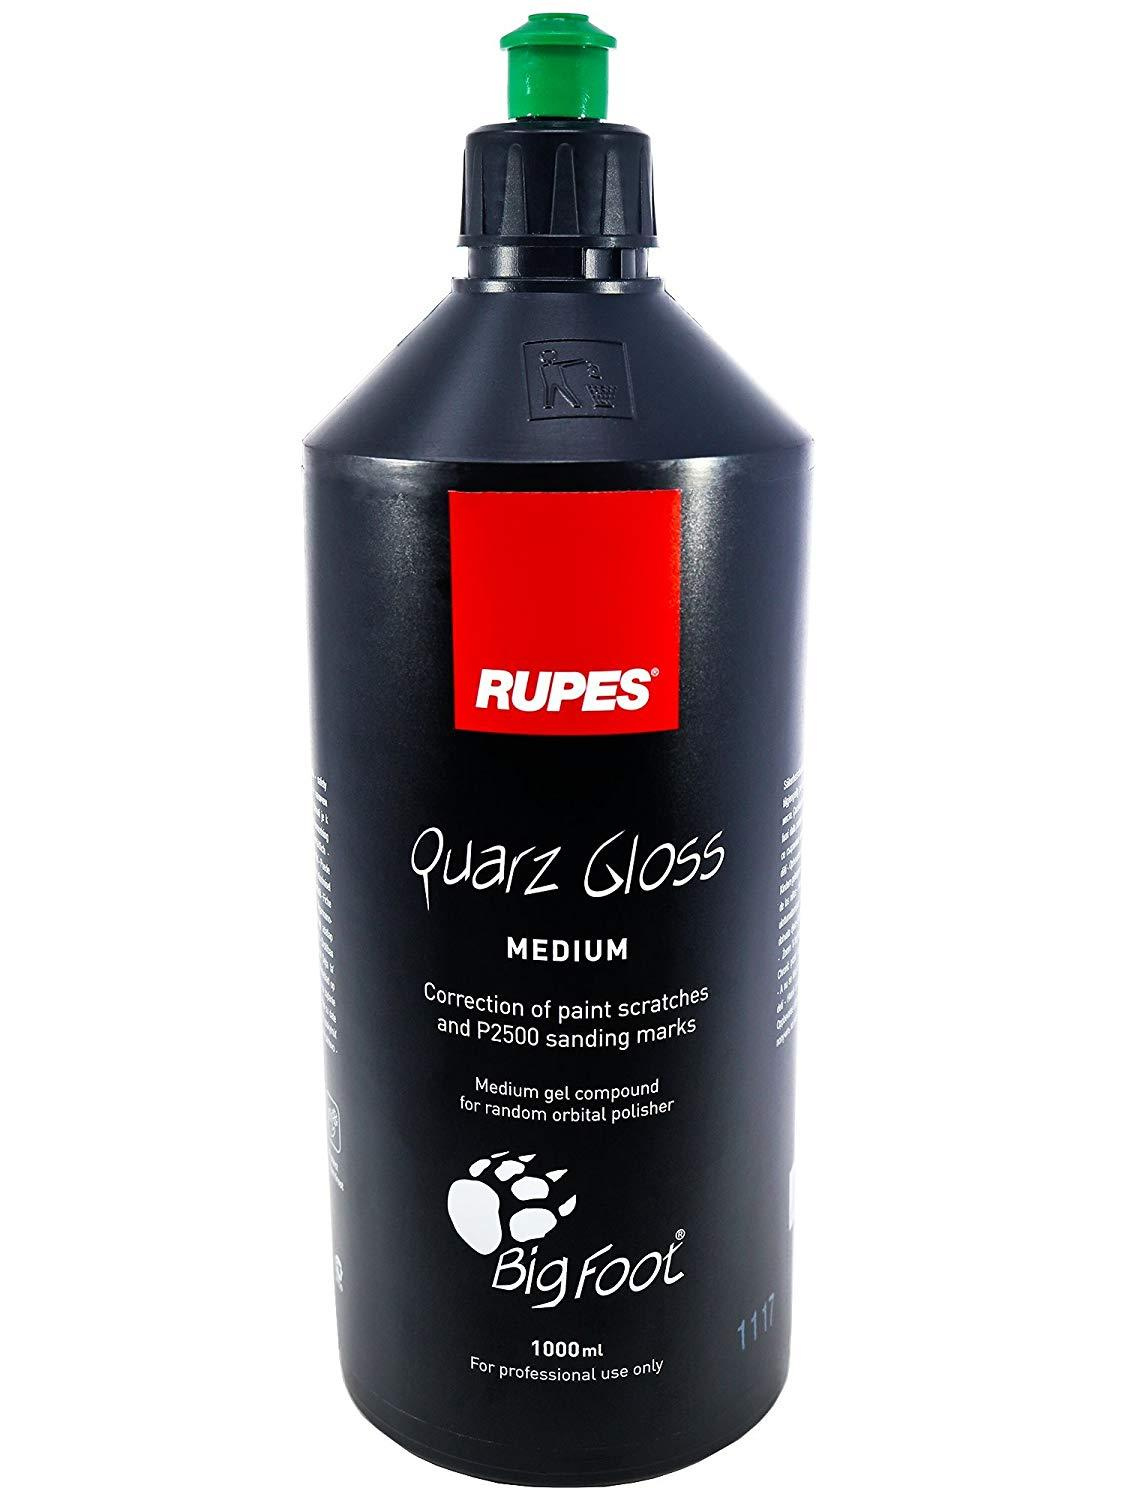 Rupes Quarz Medium #2, 1 liter.